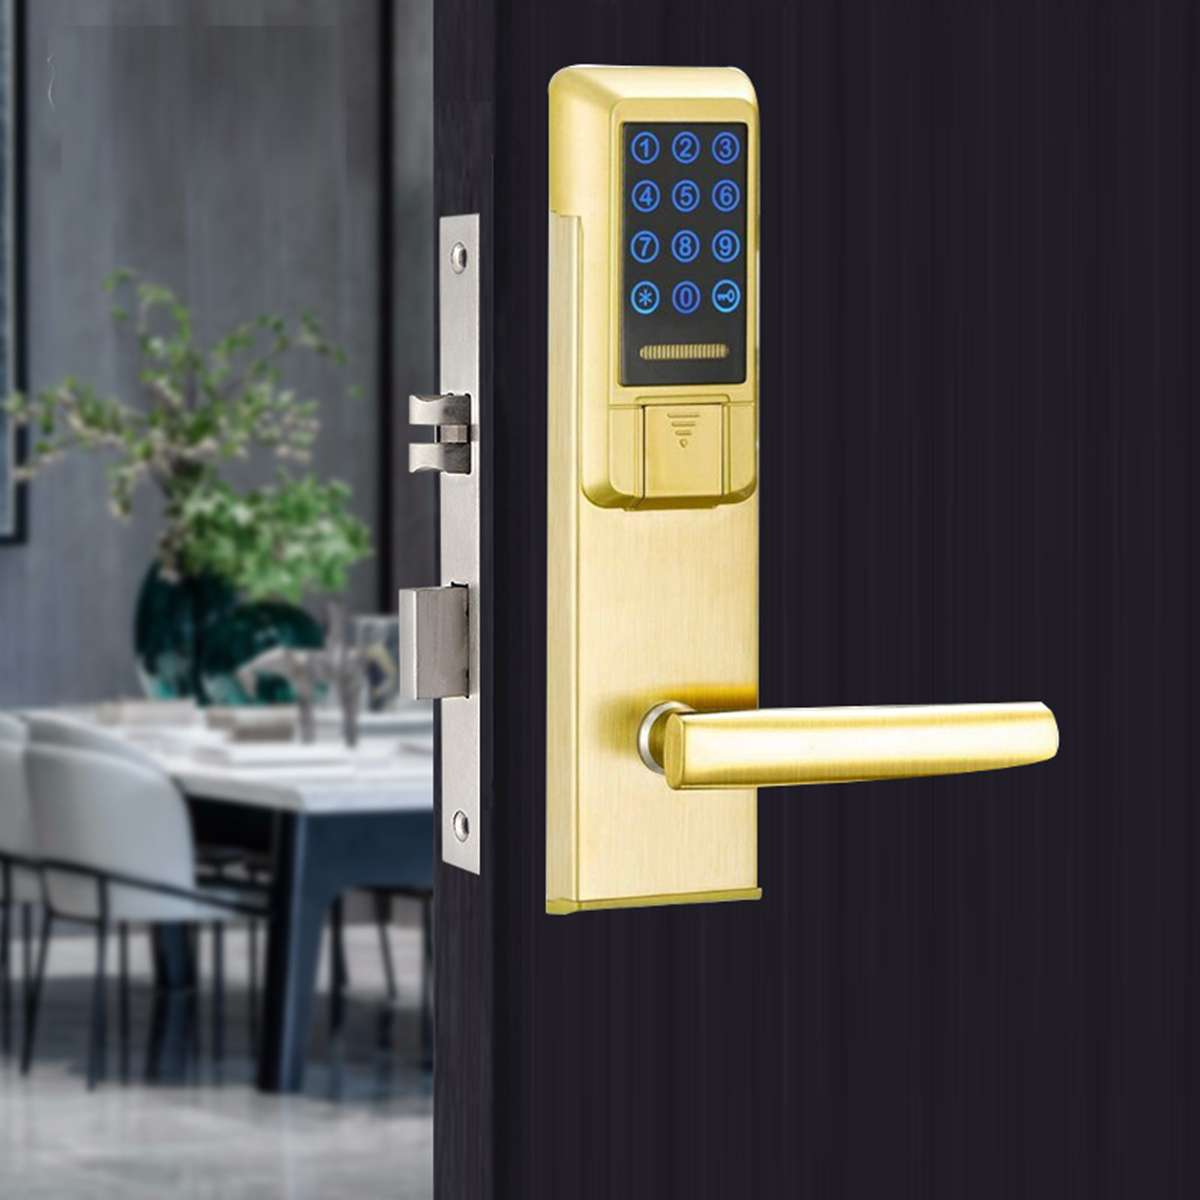 Gold Smart Electronic Entry Door Lock Key Password Cards Lock Kit Intelligent Home Security Hotel Access Control Electric Lock